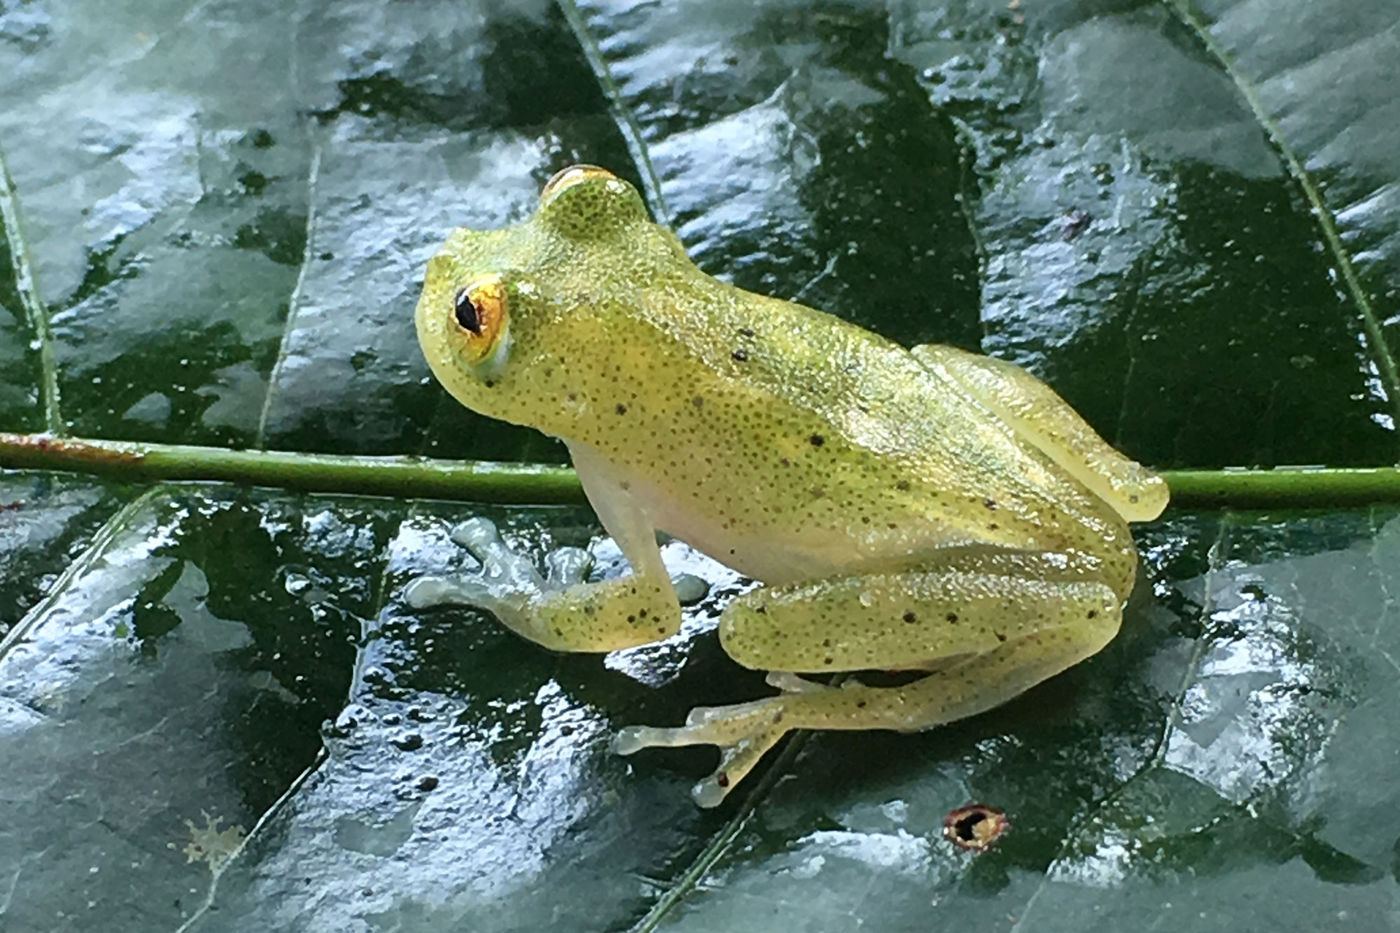 A light green frog sitting on a dark green leaf. The frog's feet are translucent.